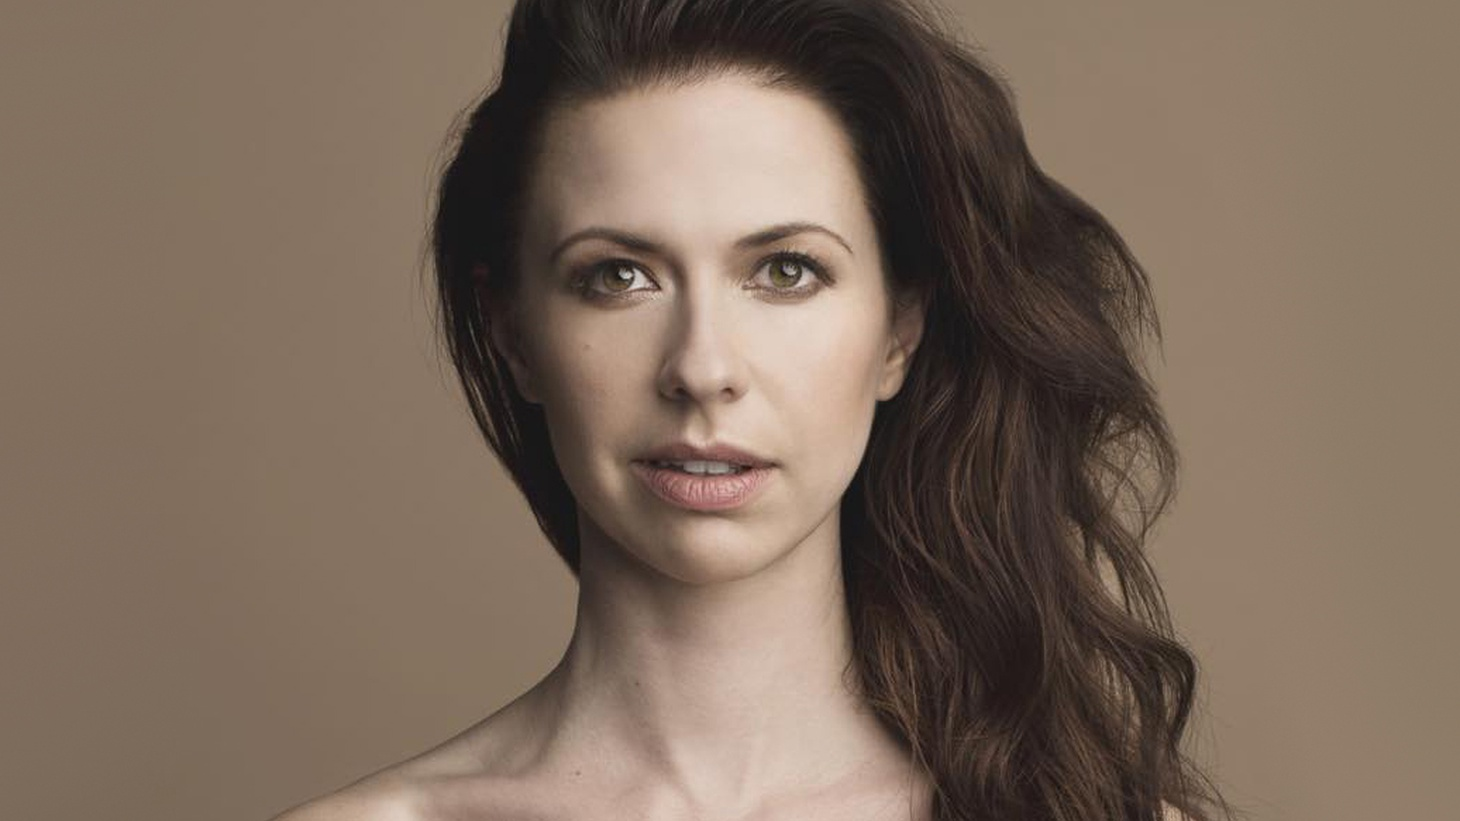 Joy Williams is best known as one half of the Grammy-winning duo The Civil Wars. They parted ways last year and Joy is stepping out on her own with a solo album.